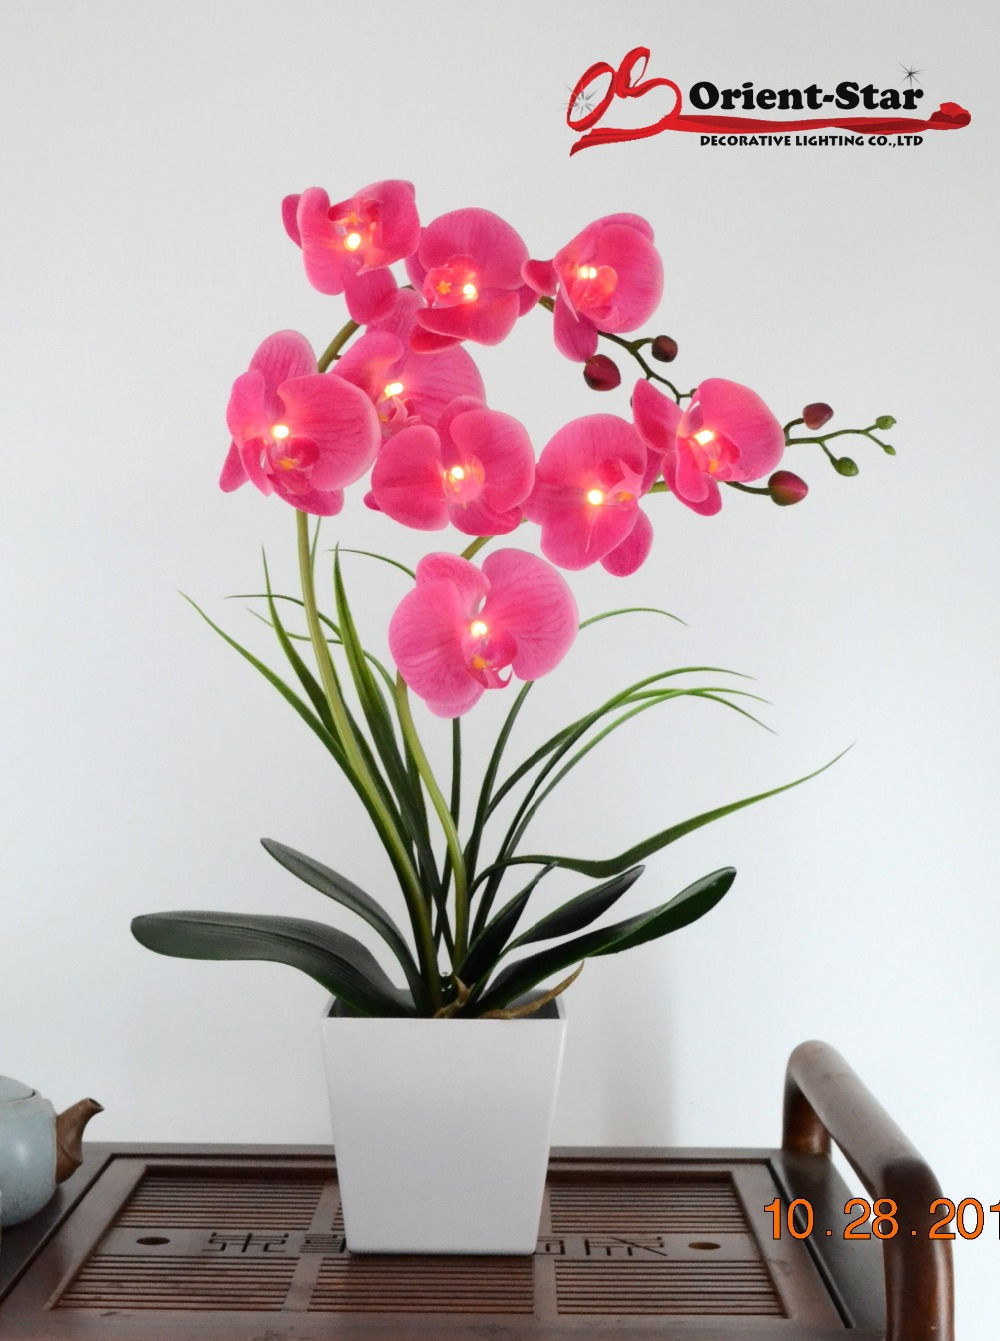 Led Table Lamps The Cheapest Price Garden Table Orchid Flower Blossom Led Light Battery Operated Lighted Energy Saving Arrangement Artificial Potted Home Balcony Lights & Lighting